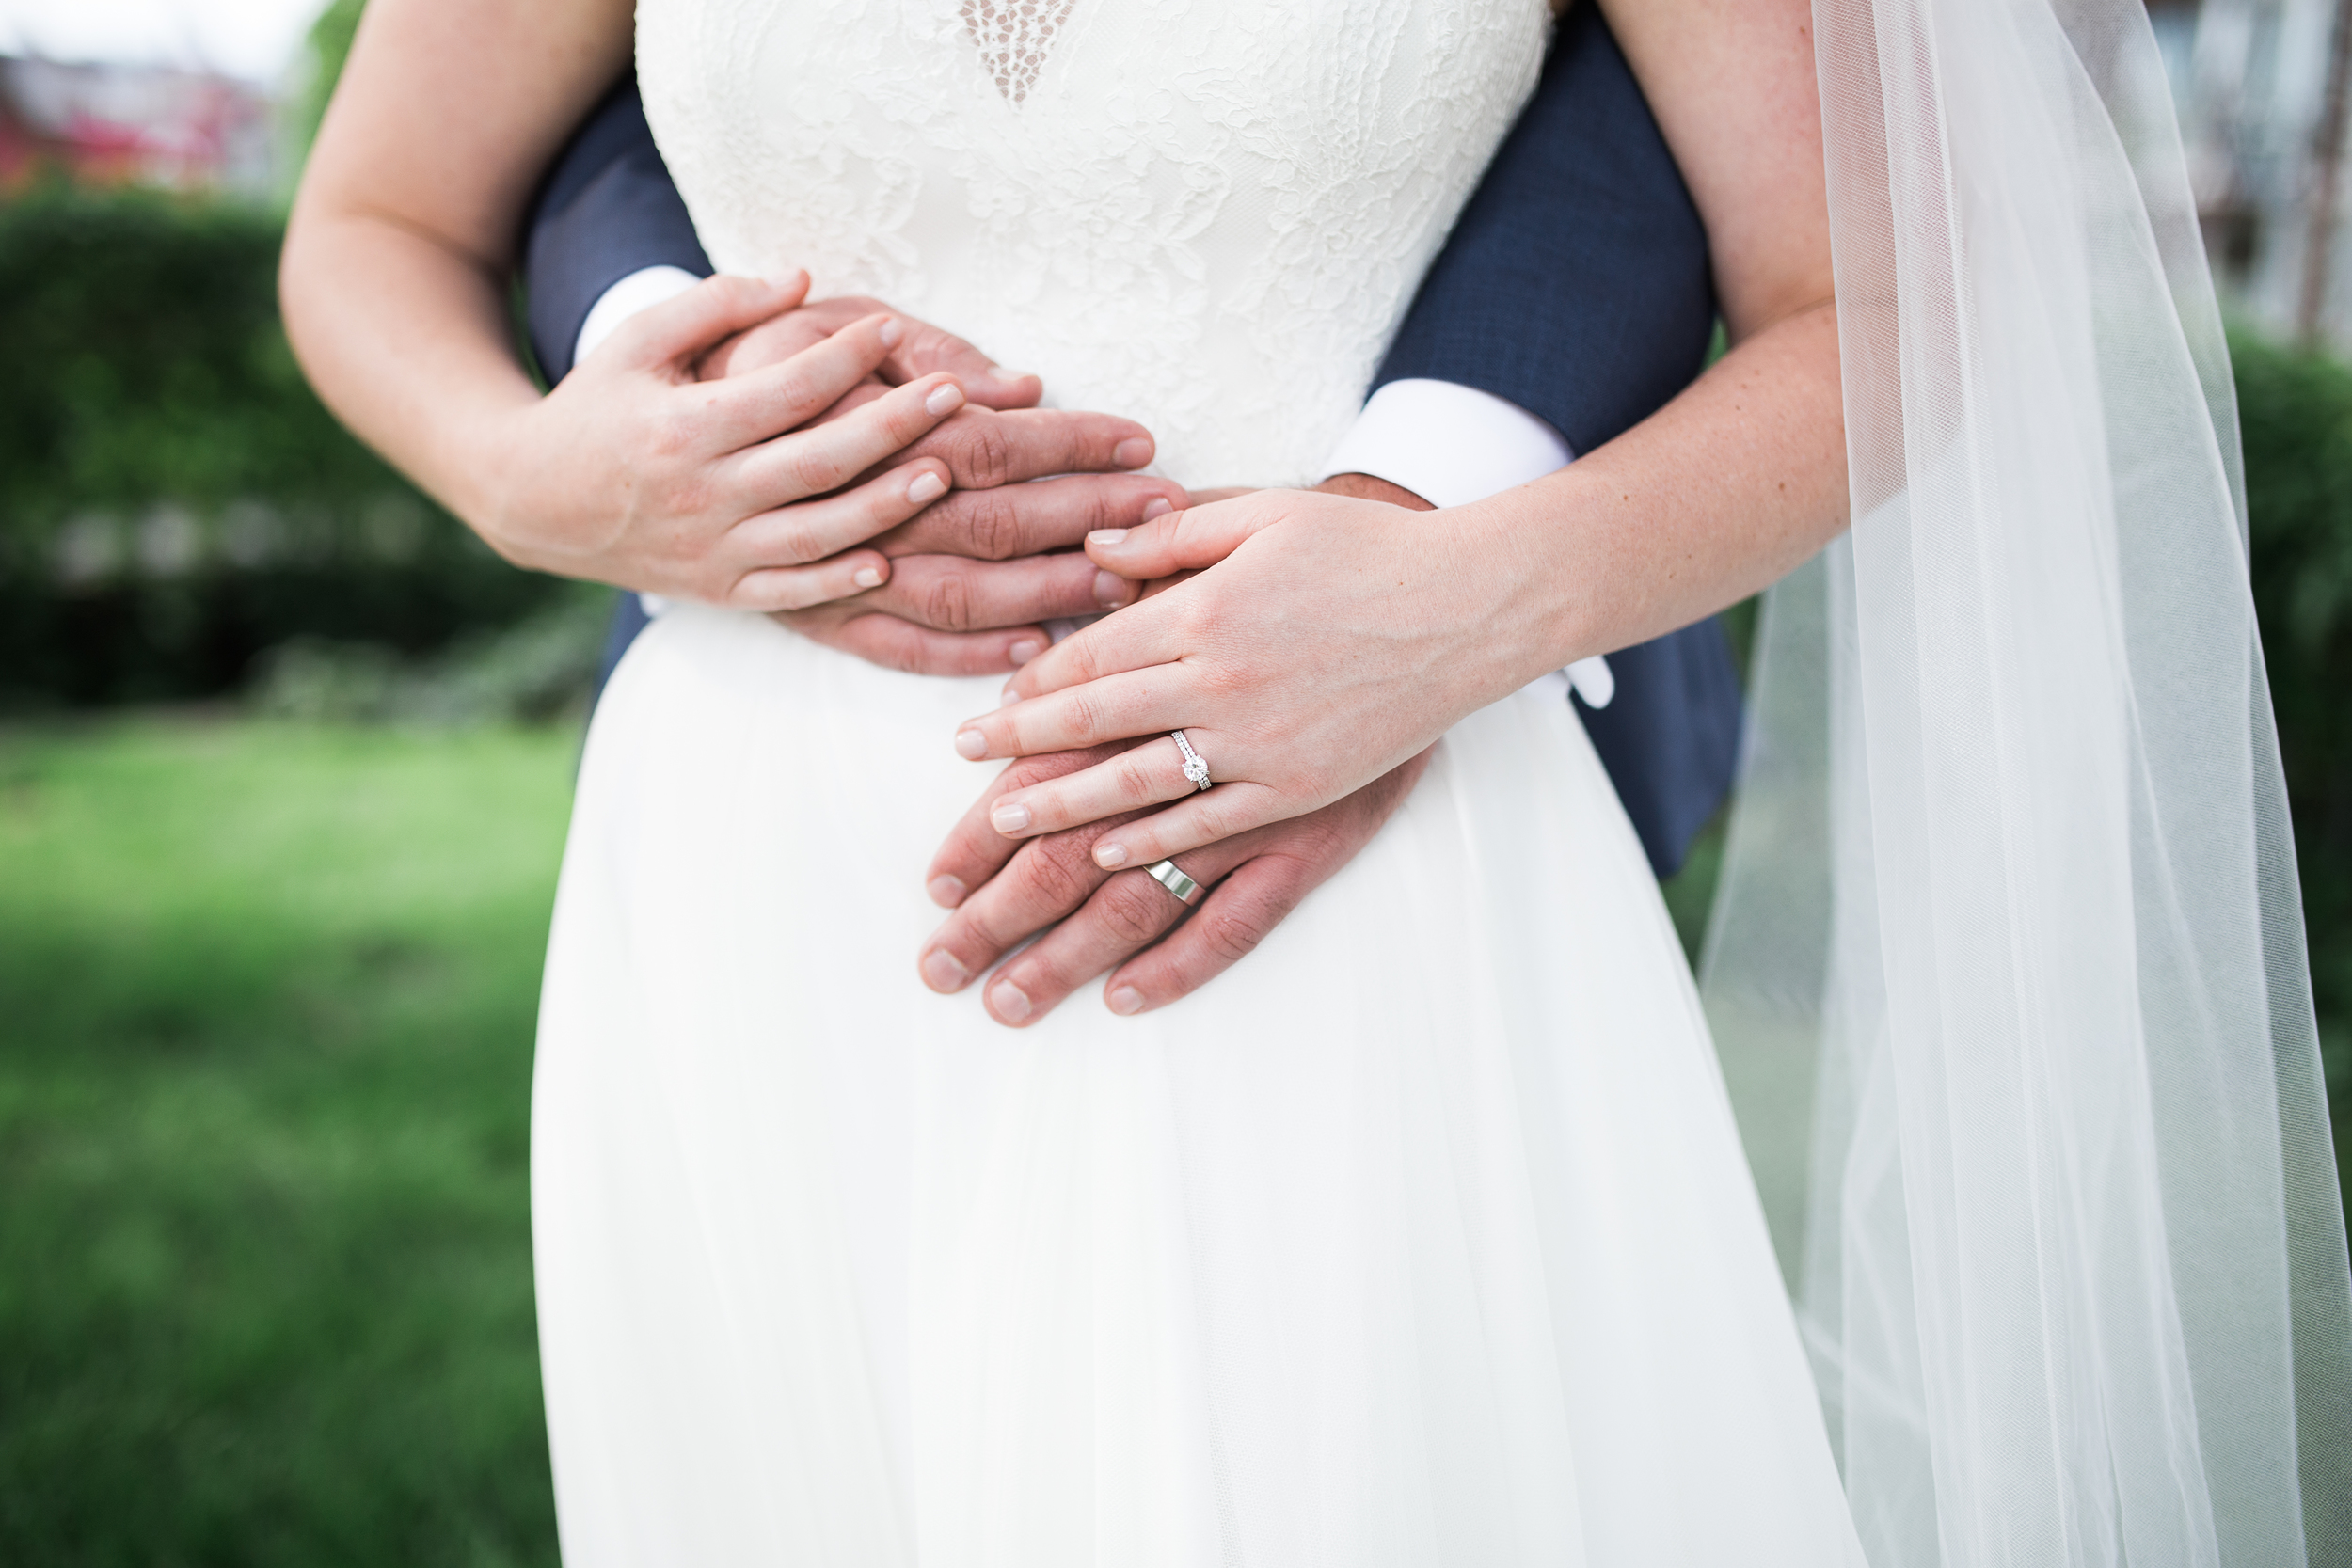 Coohills Wedding Photographer - bride and groom hugging with rings